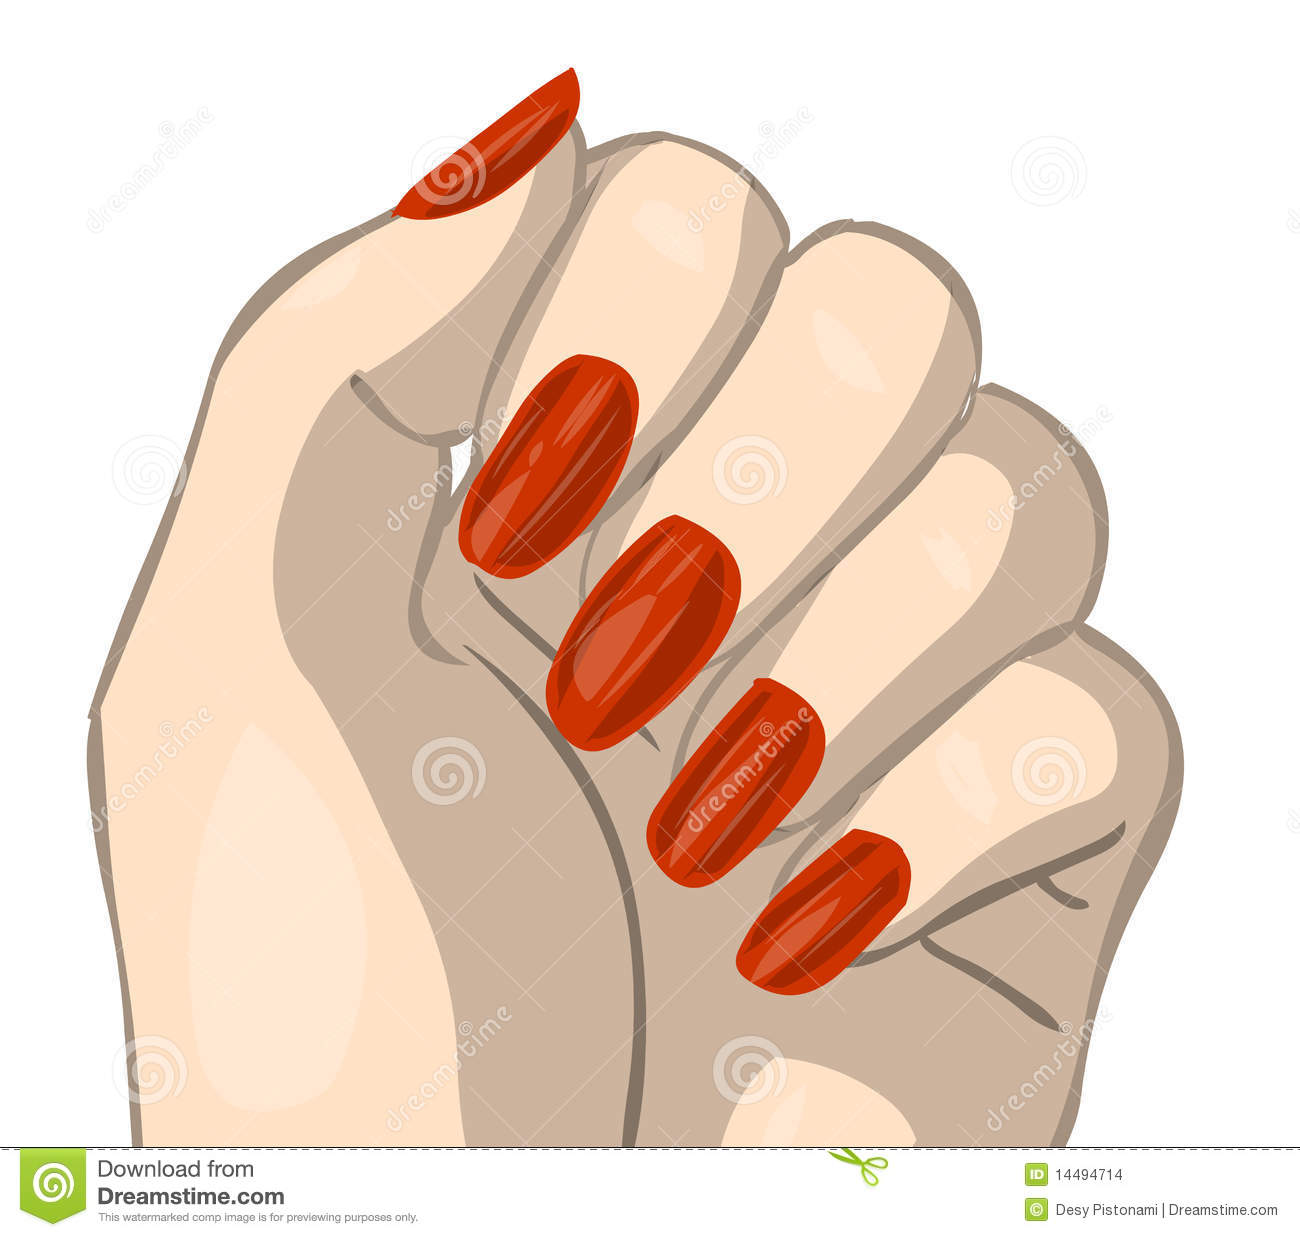 Nails clipart woman hand Clipart Nails Download Nails #3